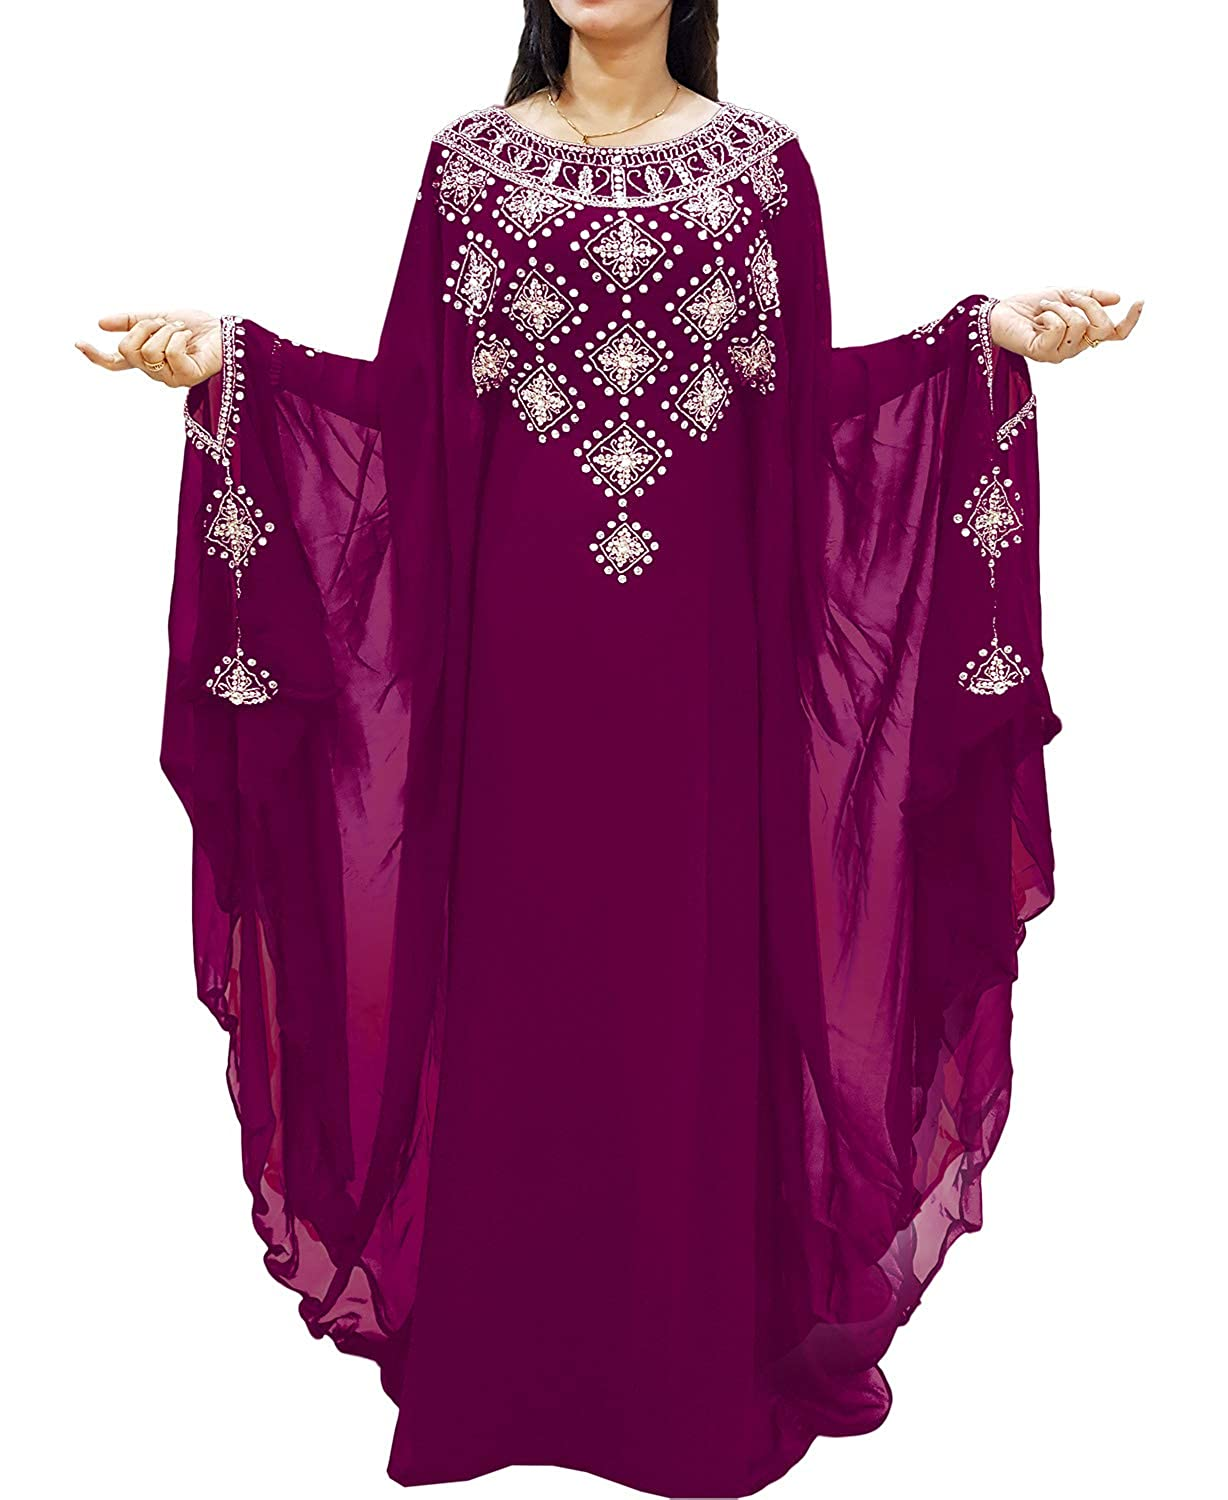 Wine African Boutique Long Sleeve Plus Size Beaded Mgoldccan Kaftans African Dresses for Women